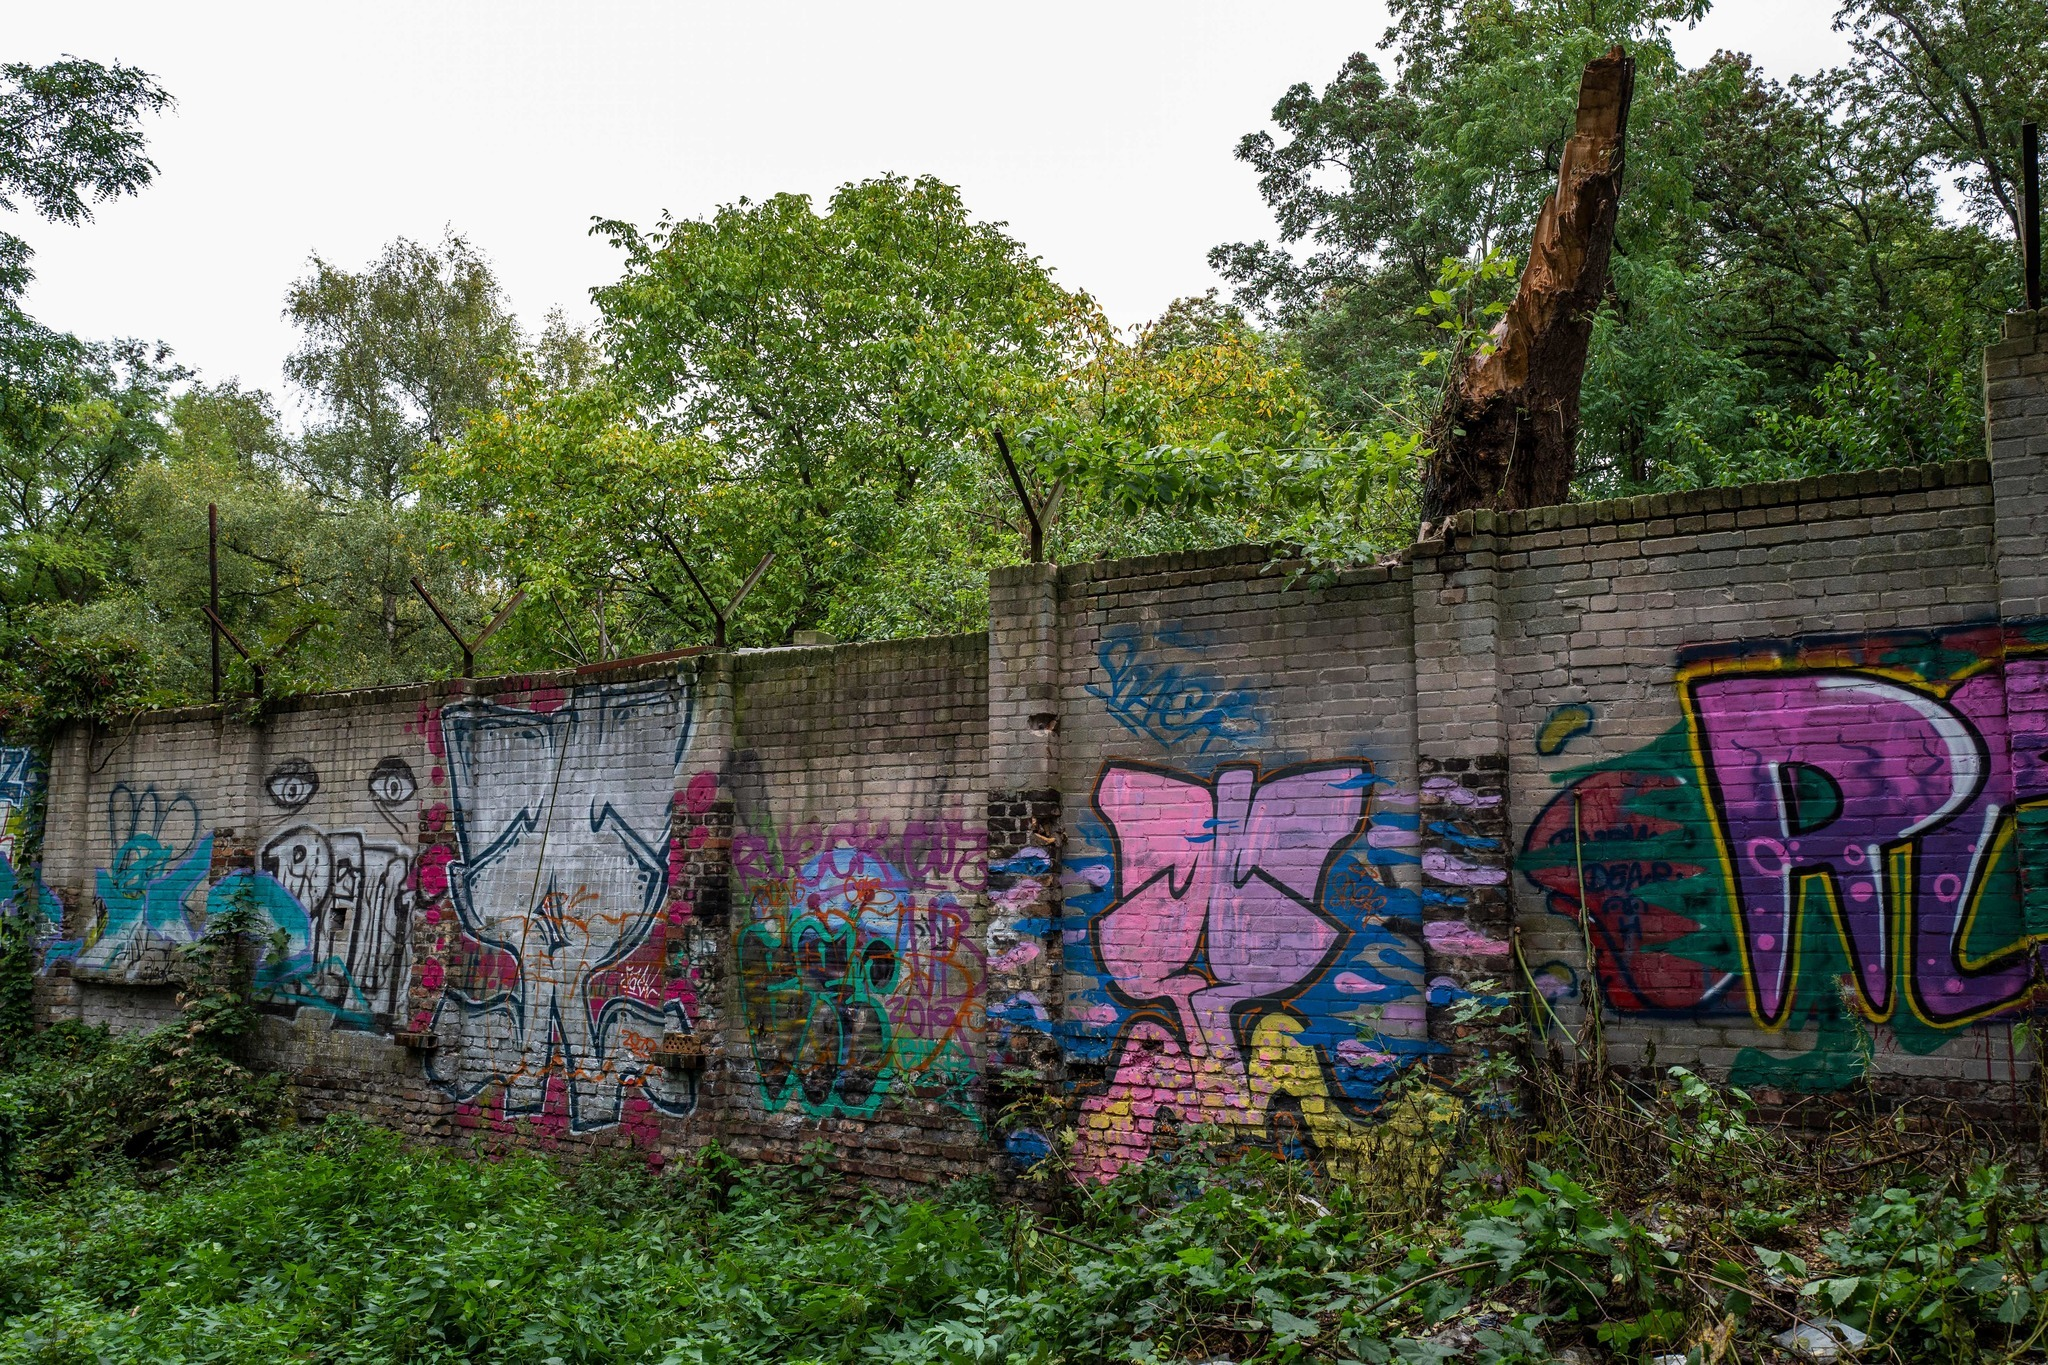 196-foot section of Berlin Wall demolished 'almost overnight' to make way for condos